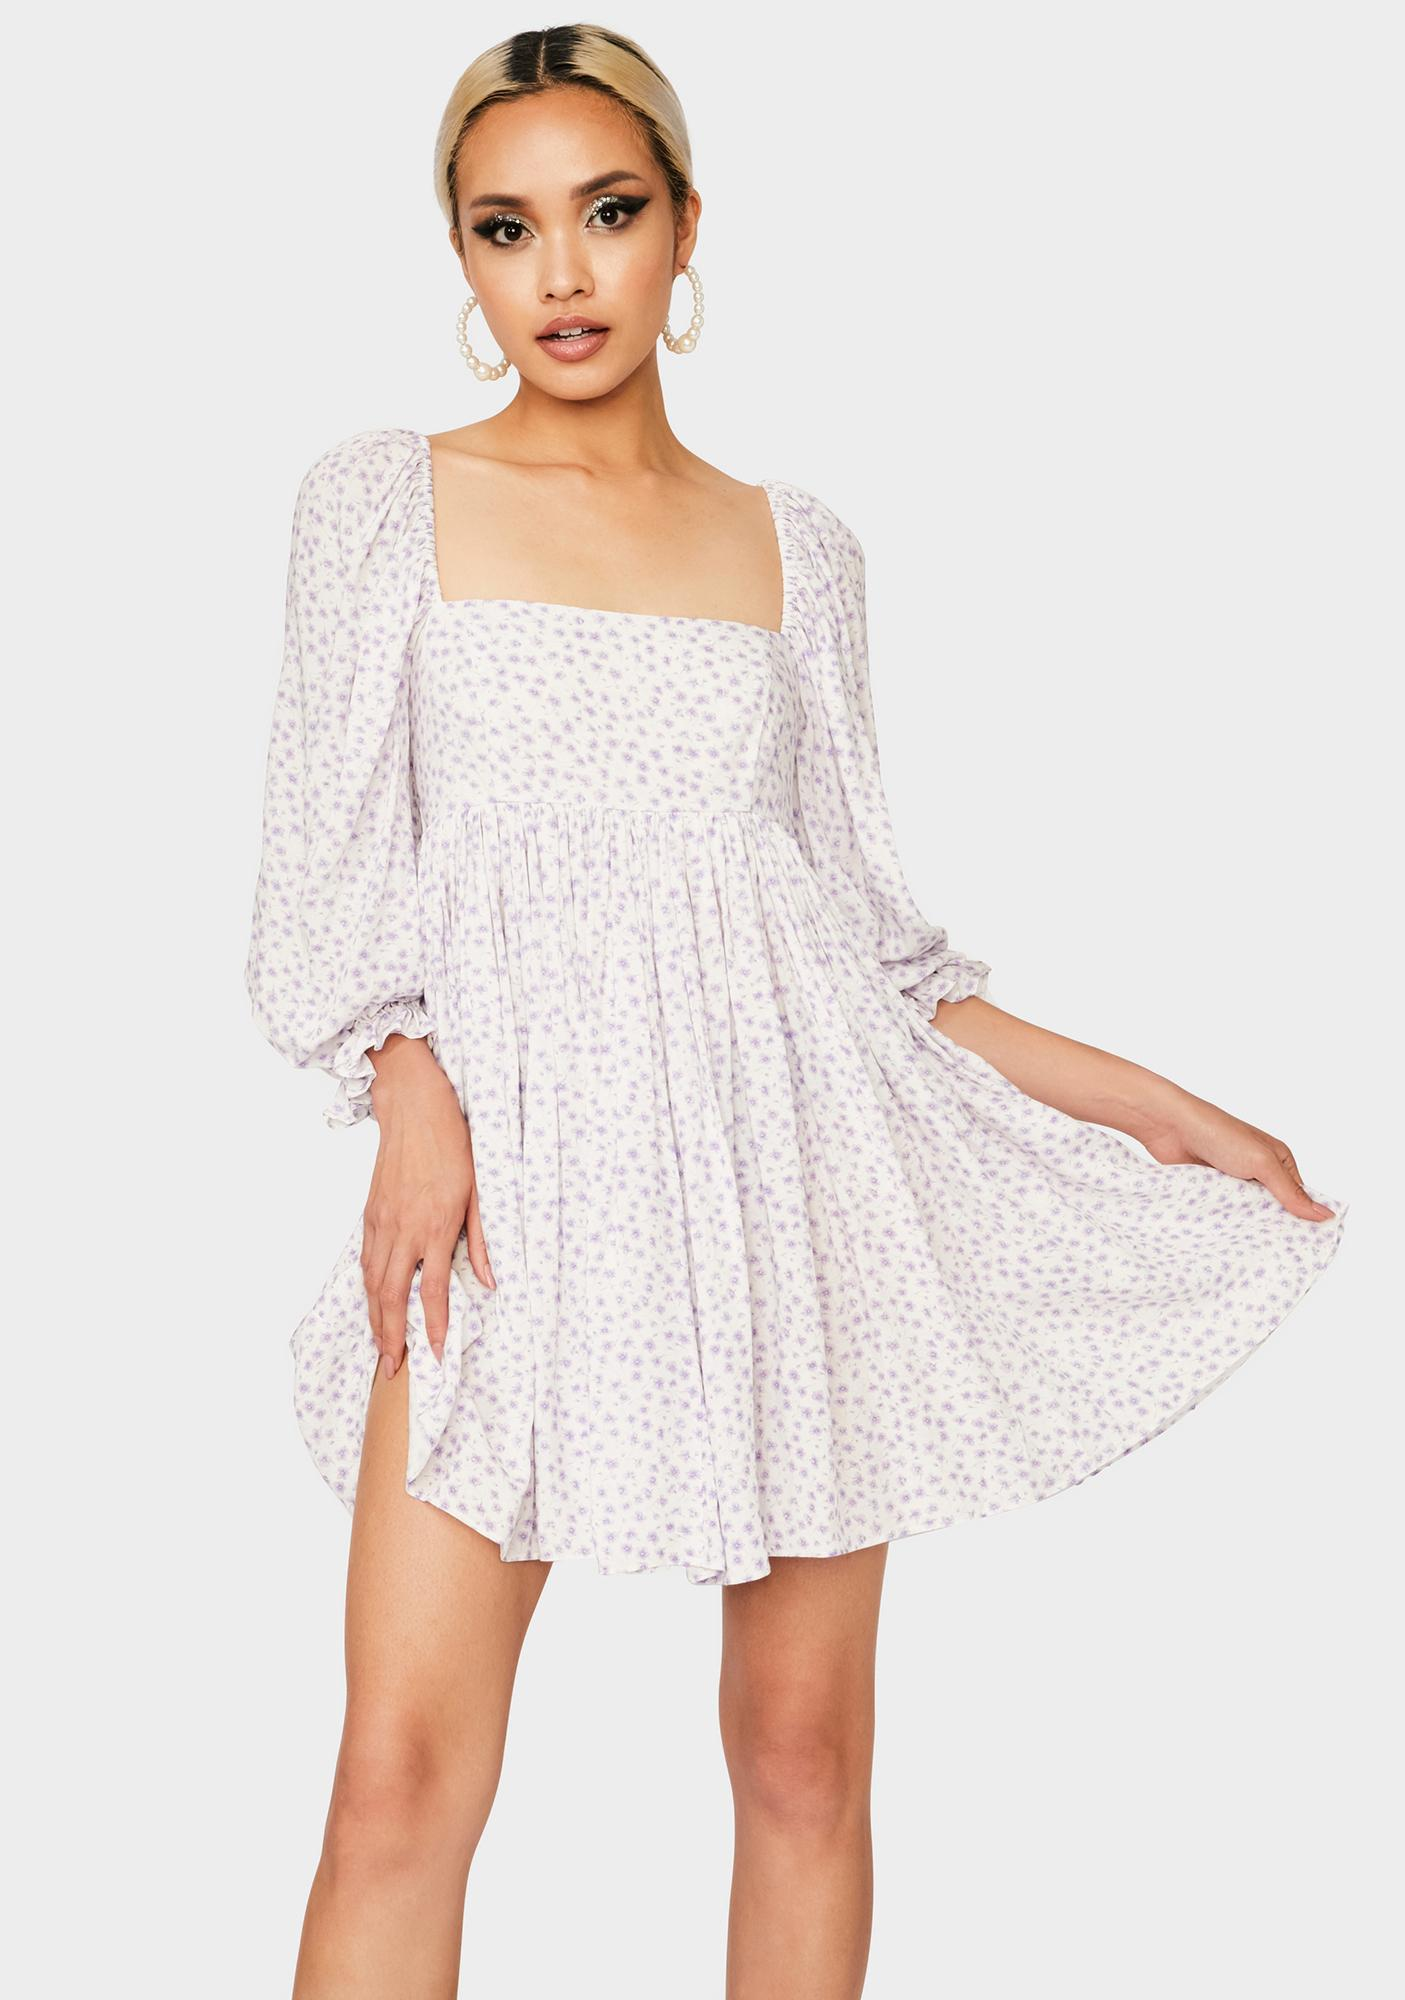 Selkie Sweet Daisy Floral Puff Dress